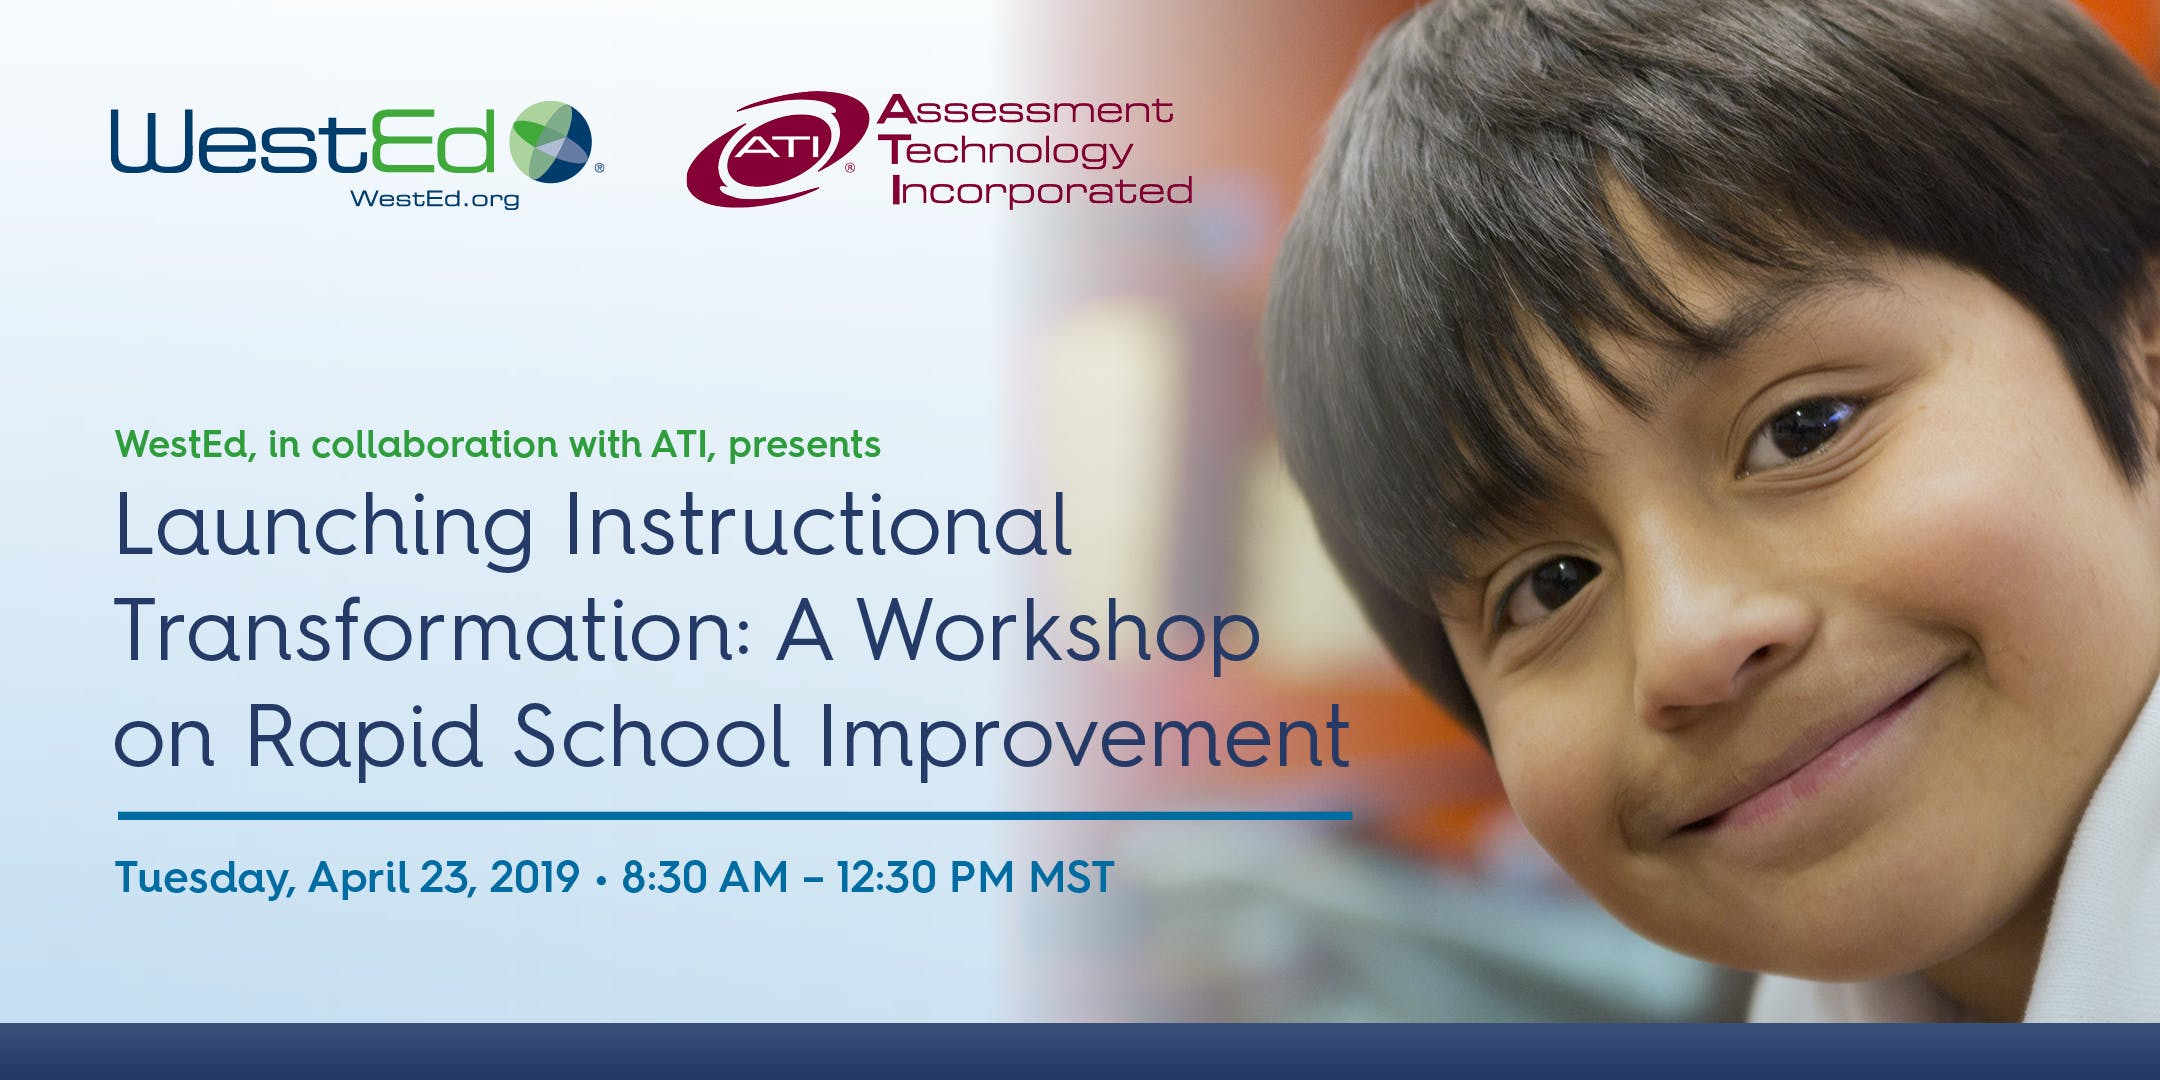 LAST CHANCE - Launching Instructional Transformation